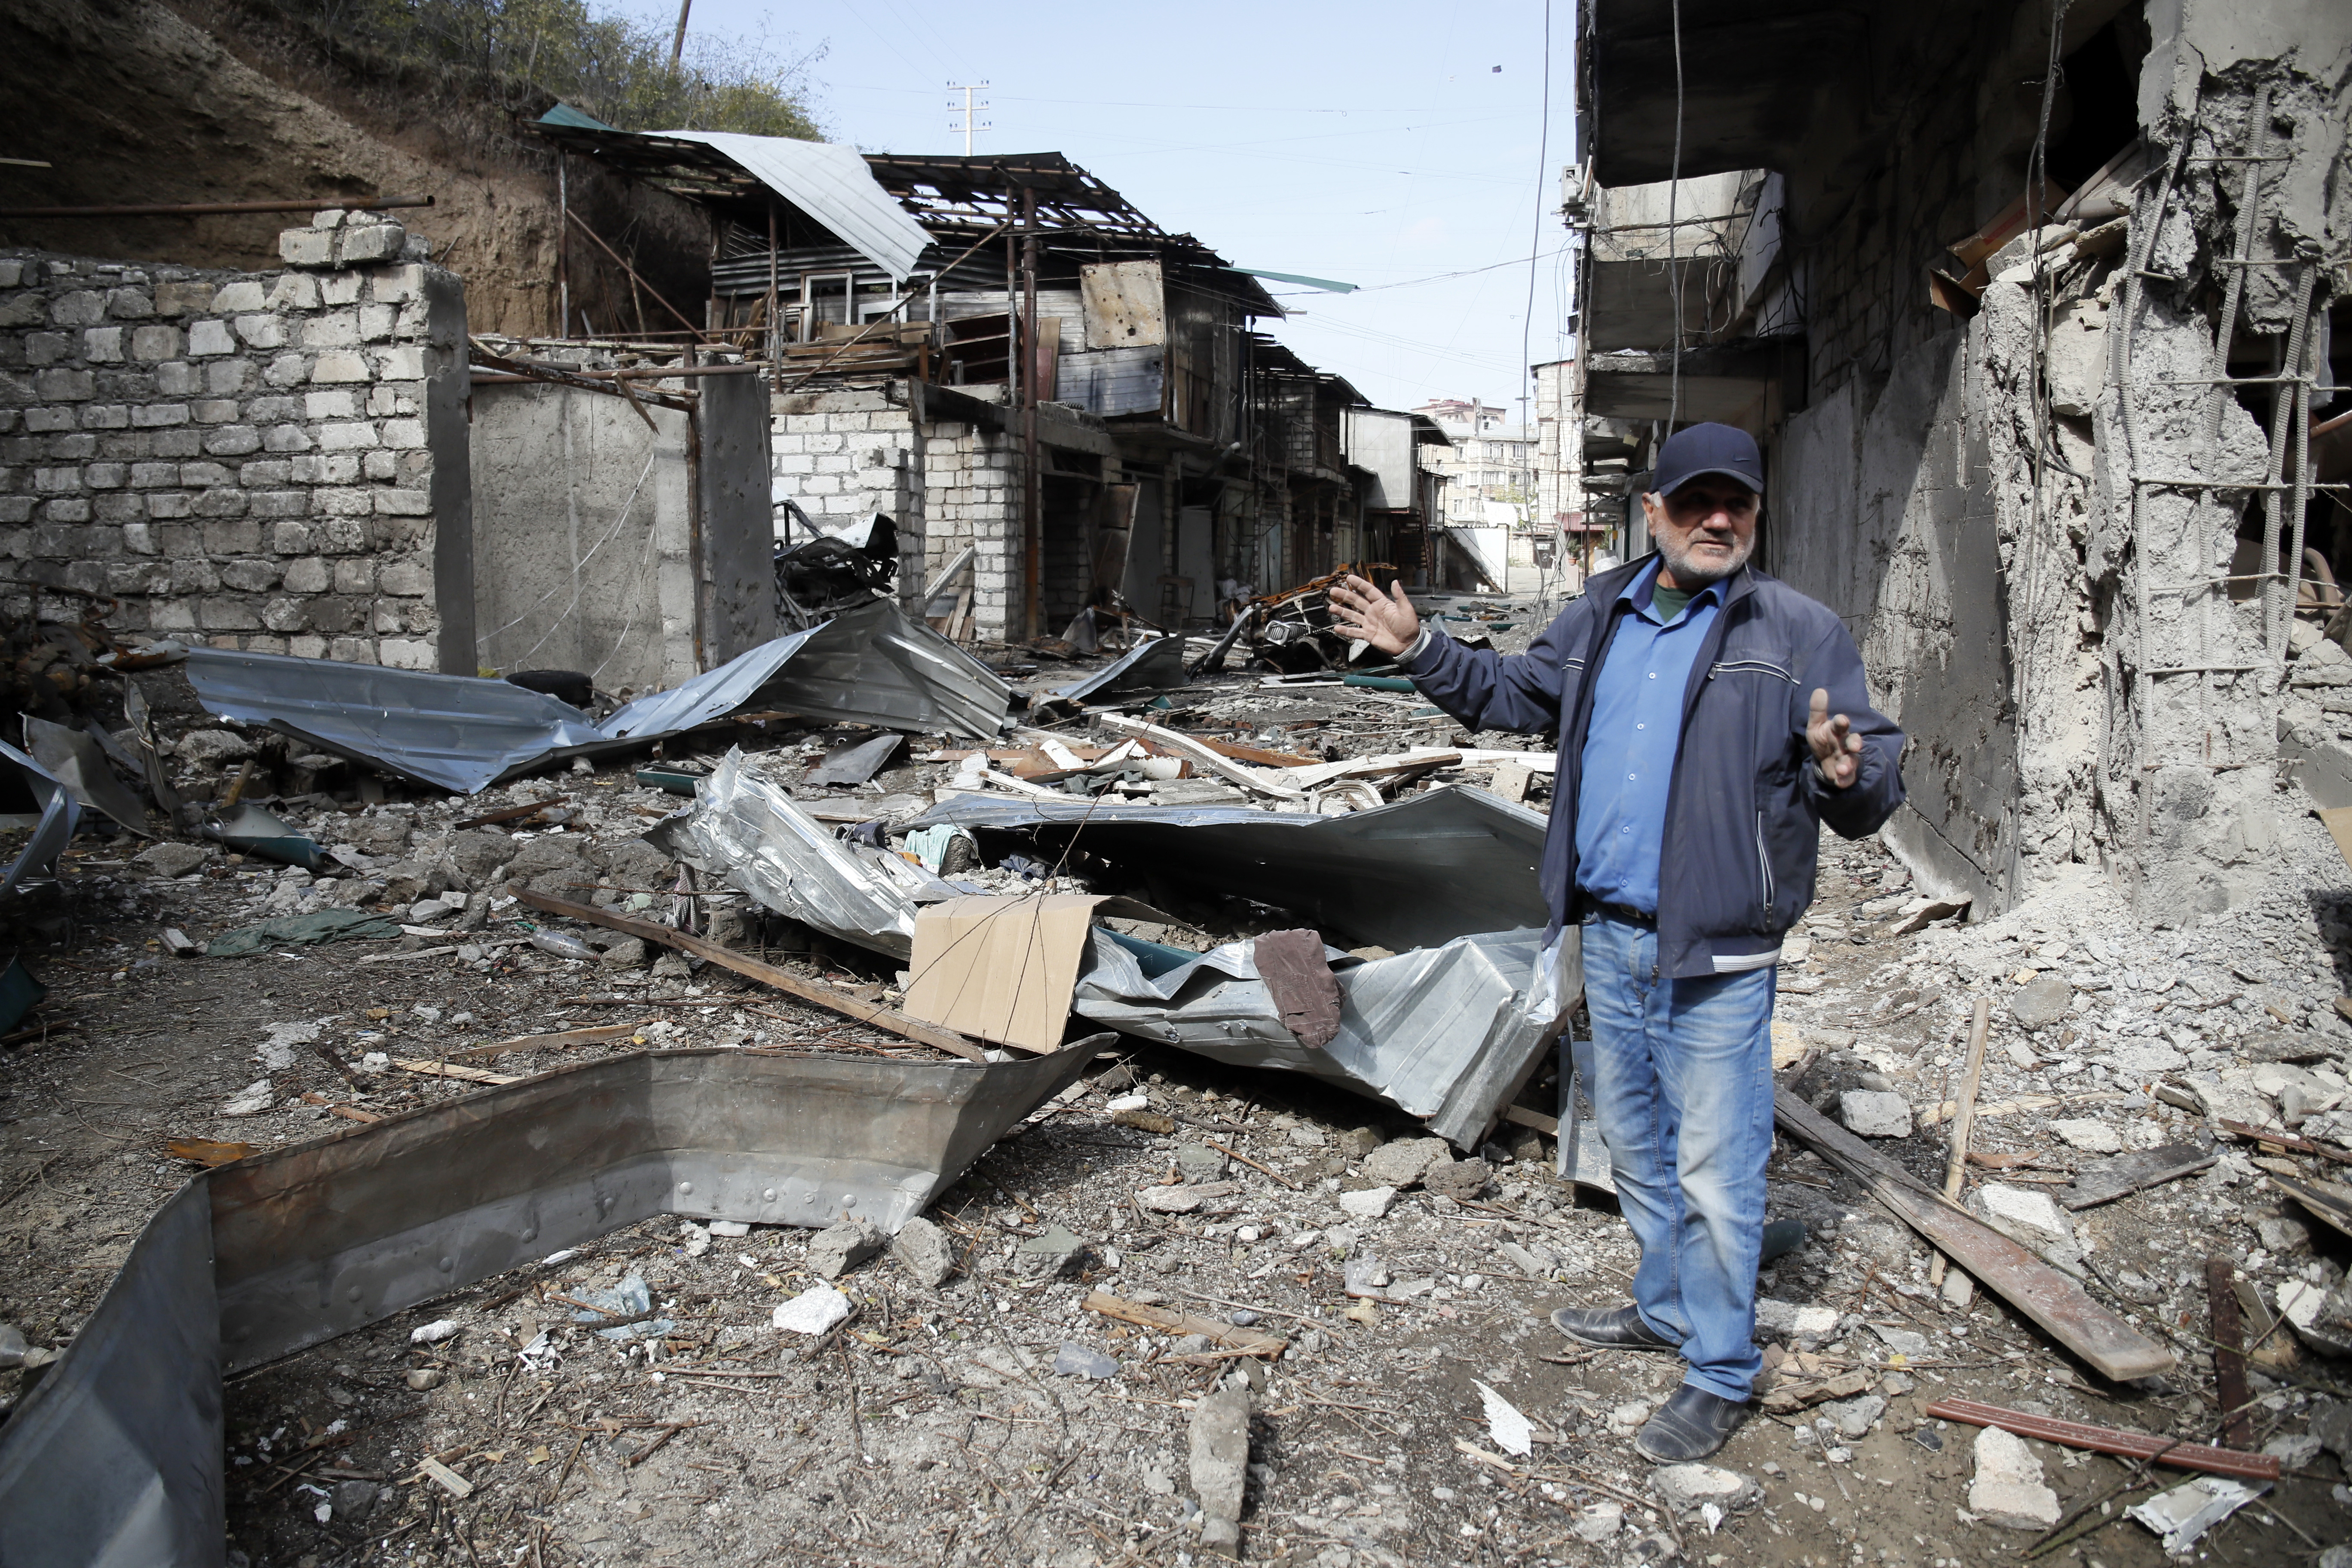 Eduard Chechyan gestures in the yard of his apartment building, destroyed by shelling by Azerbaijan's artillery, during a military conflict in Stepanakert, the separatist region of Nagorno-Karabakh, Oct. 10, 2020.